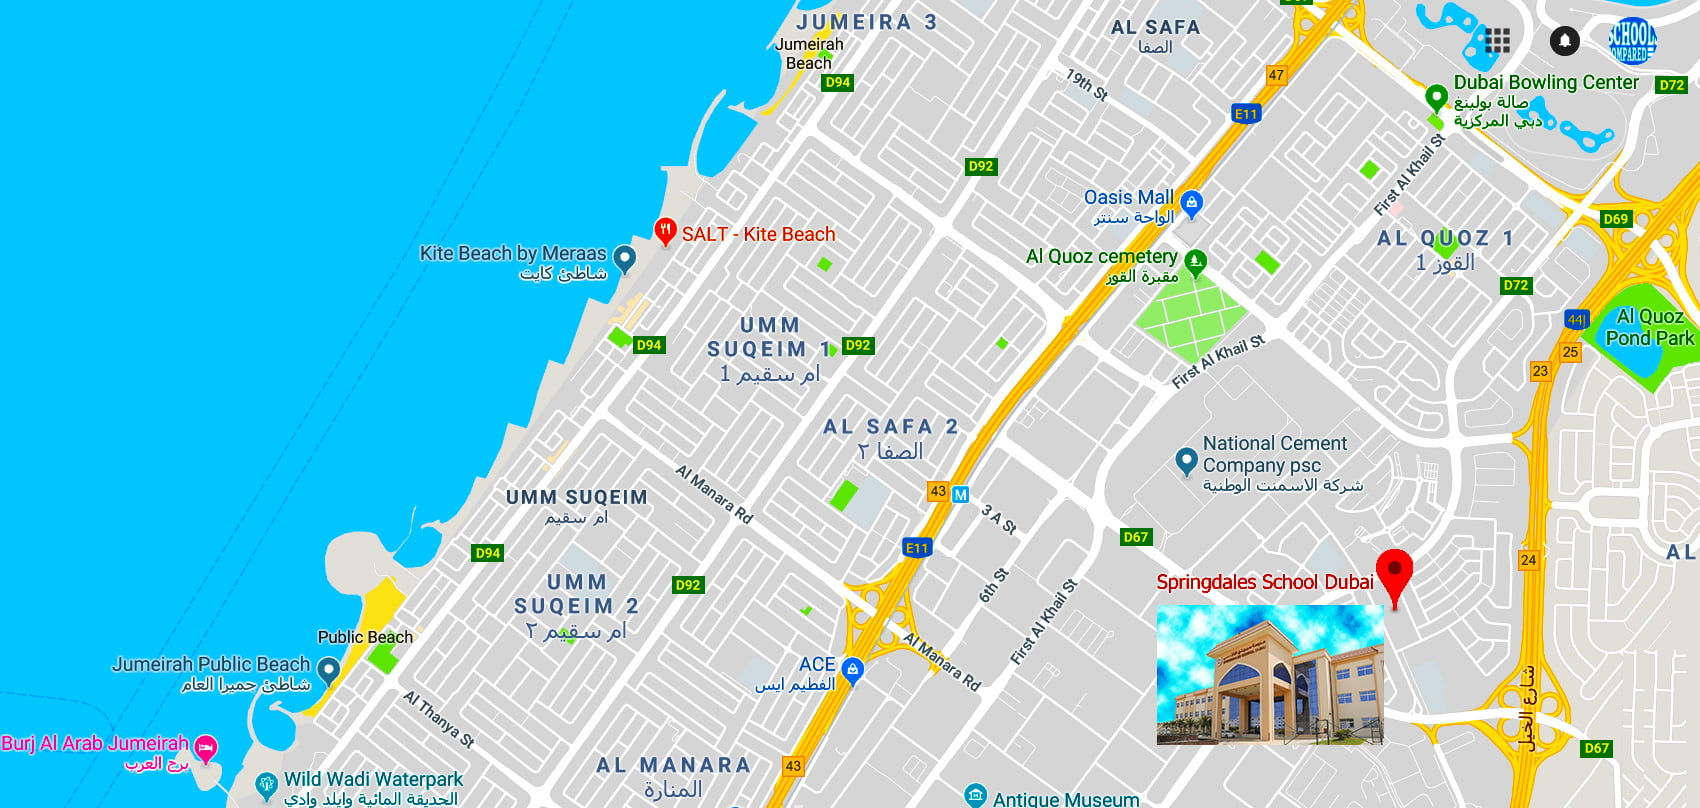 Map showing the location of Springdales School in Dubai next to Jumeira University